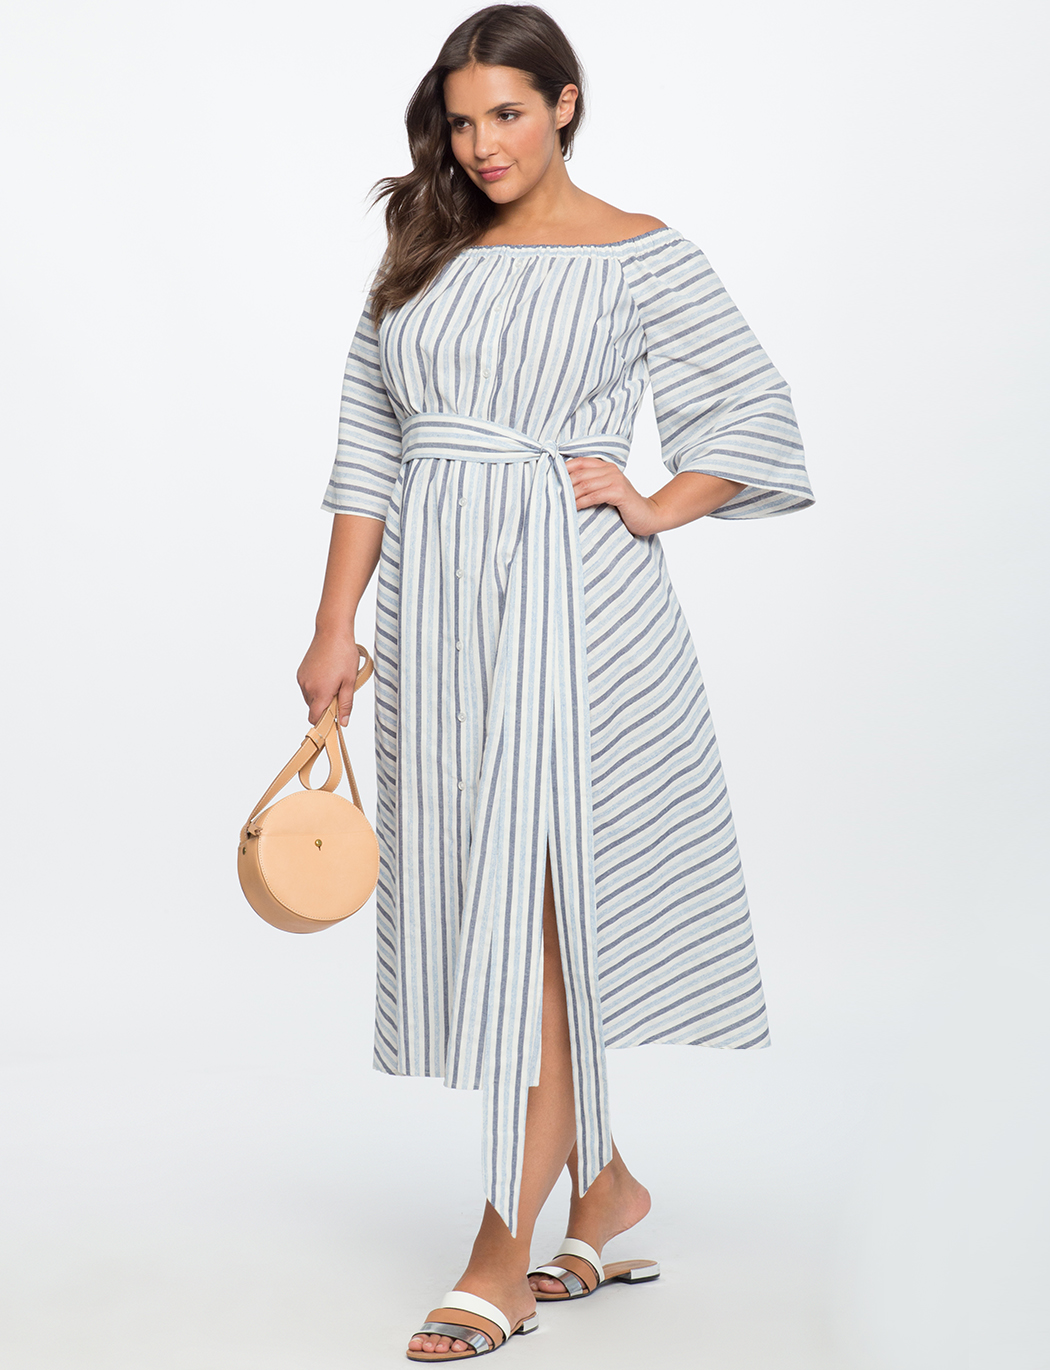 Button Down Off the Shoulder Dress